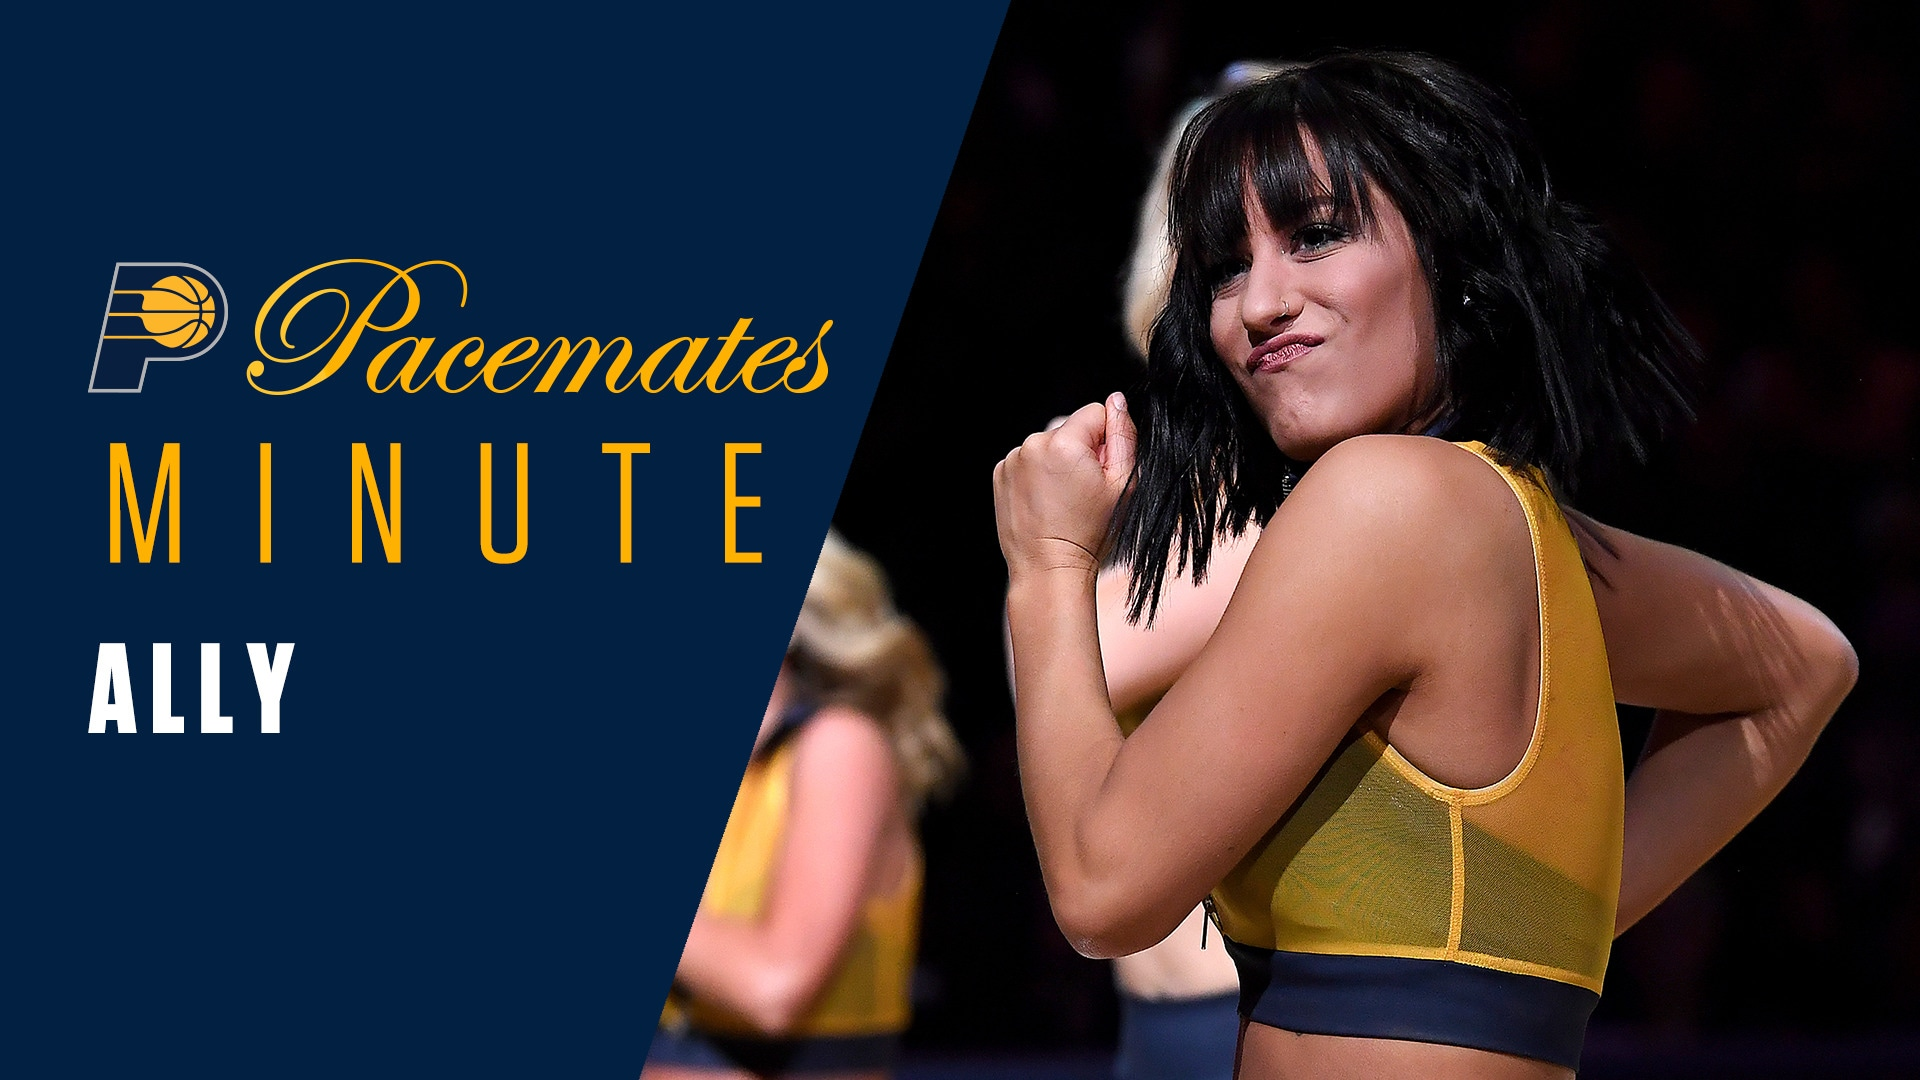 Pacemates Minute: Ally